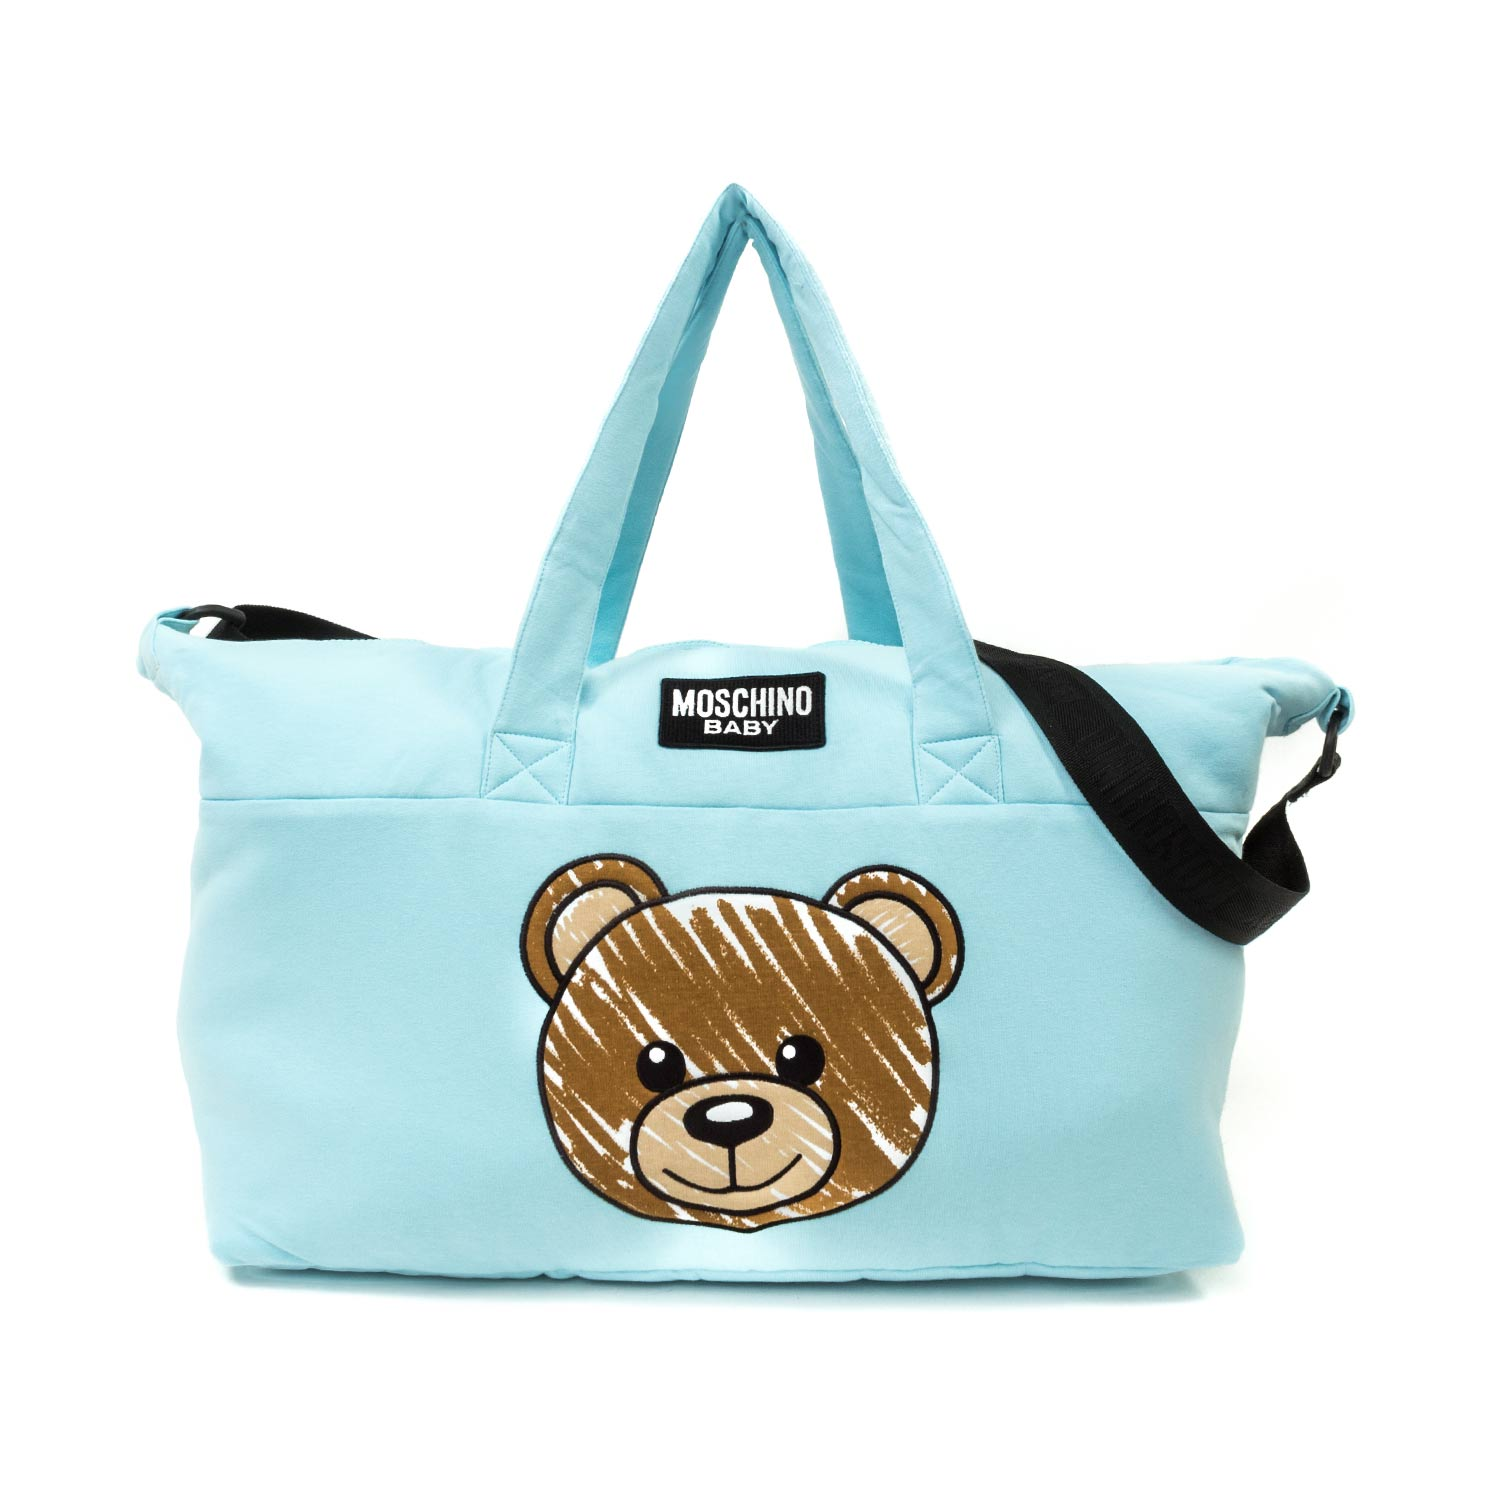 58444a66ec Moschino - Mommy Bag With Teddy Bear Logo - annameglio.com shop online